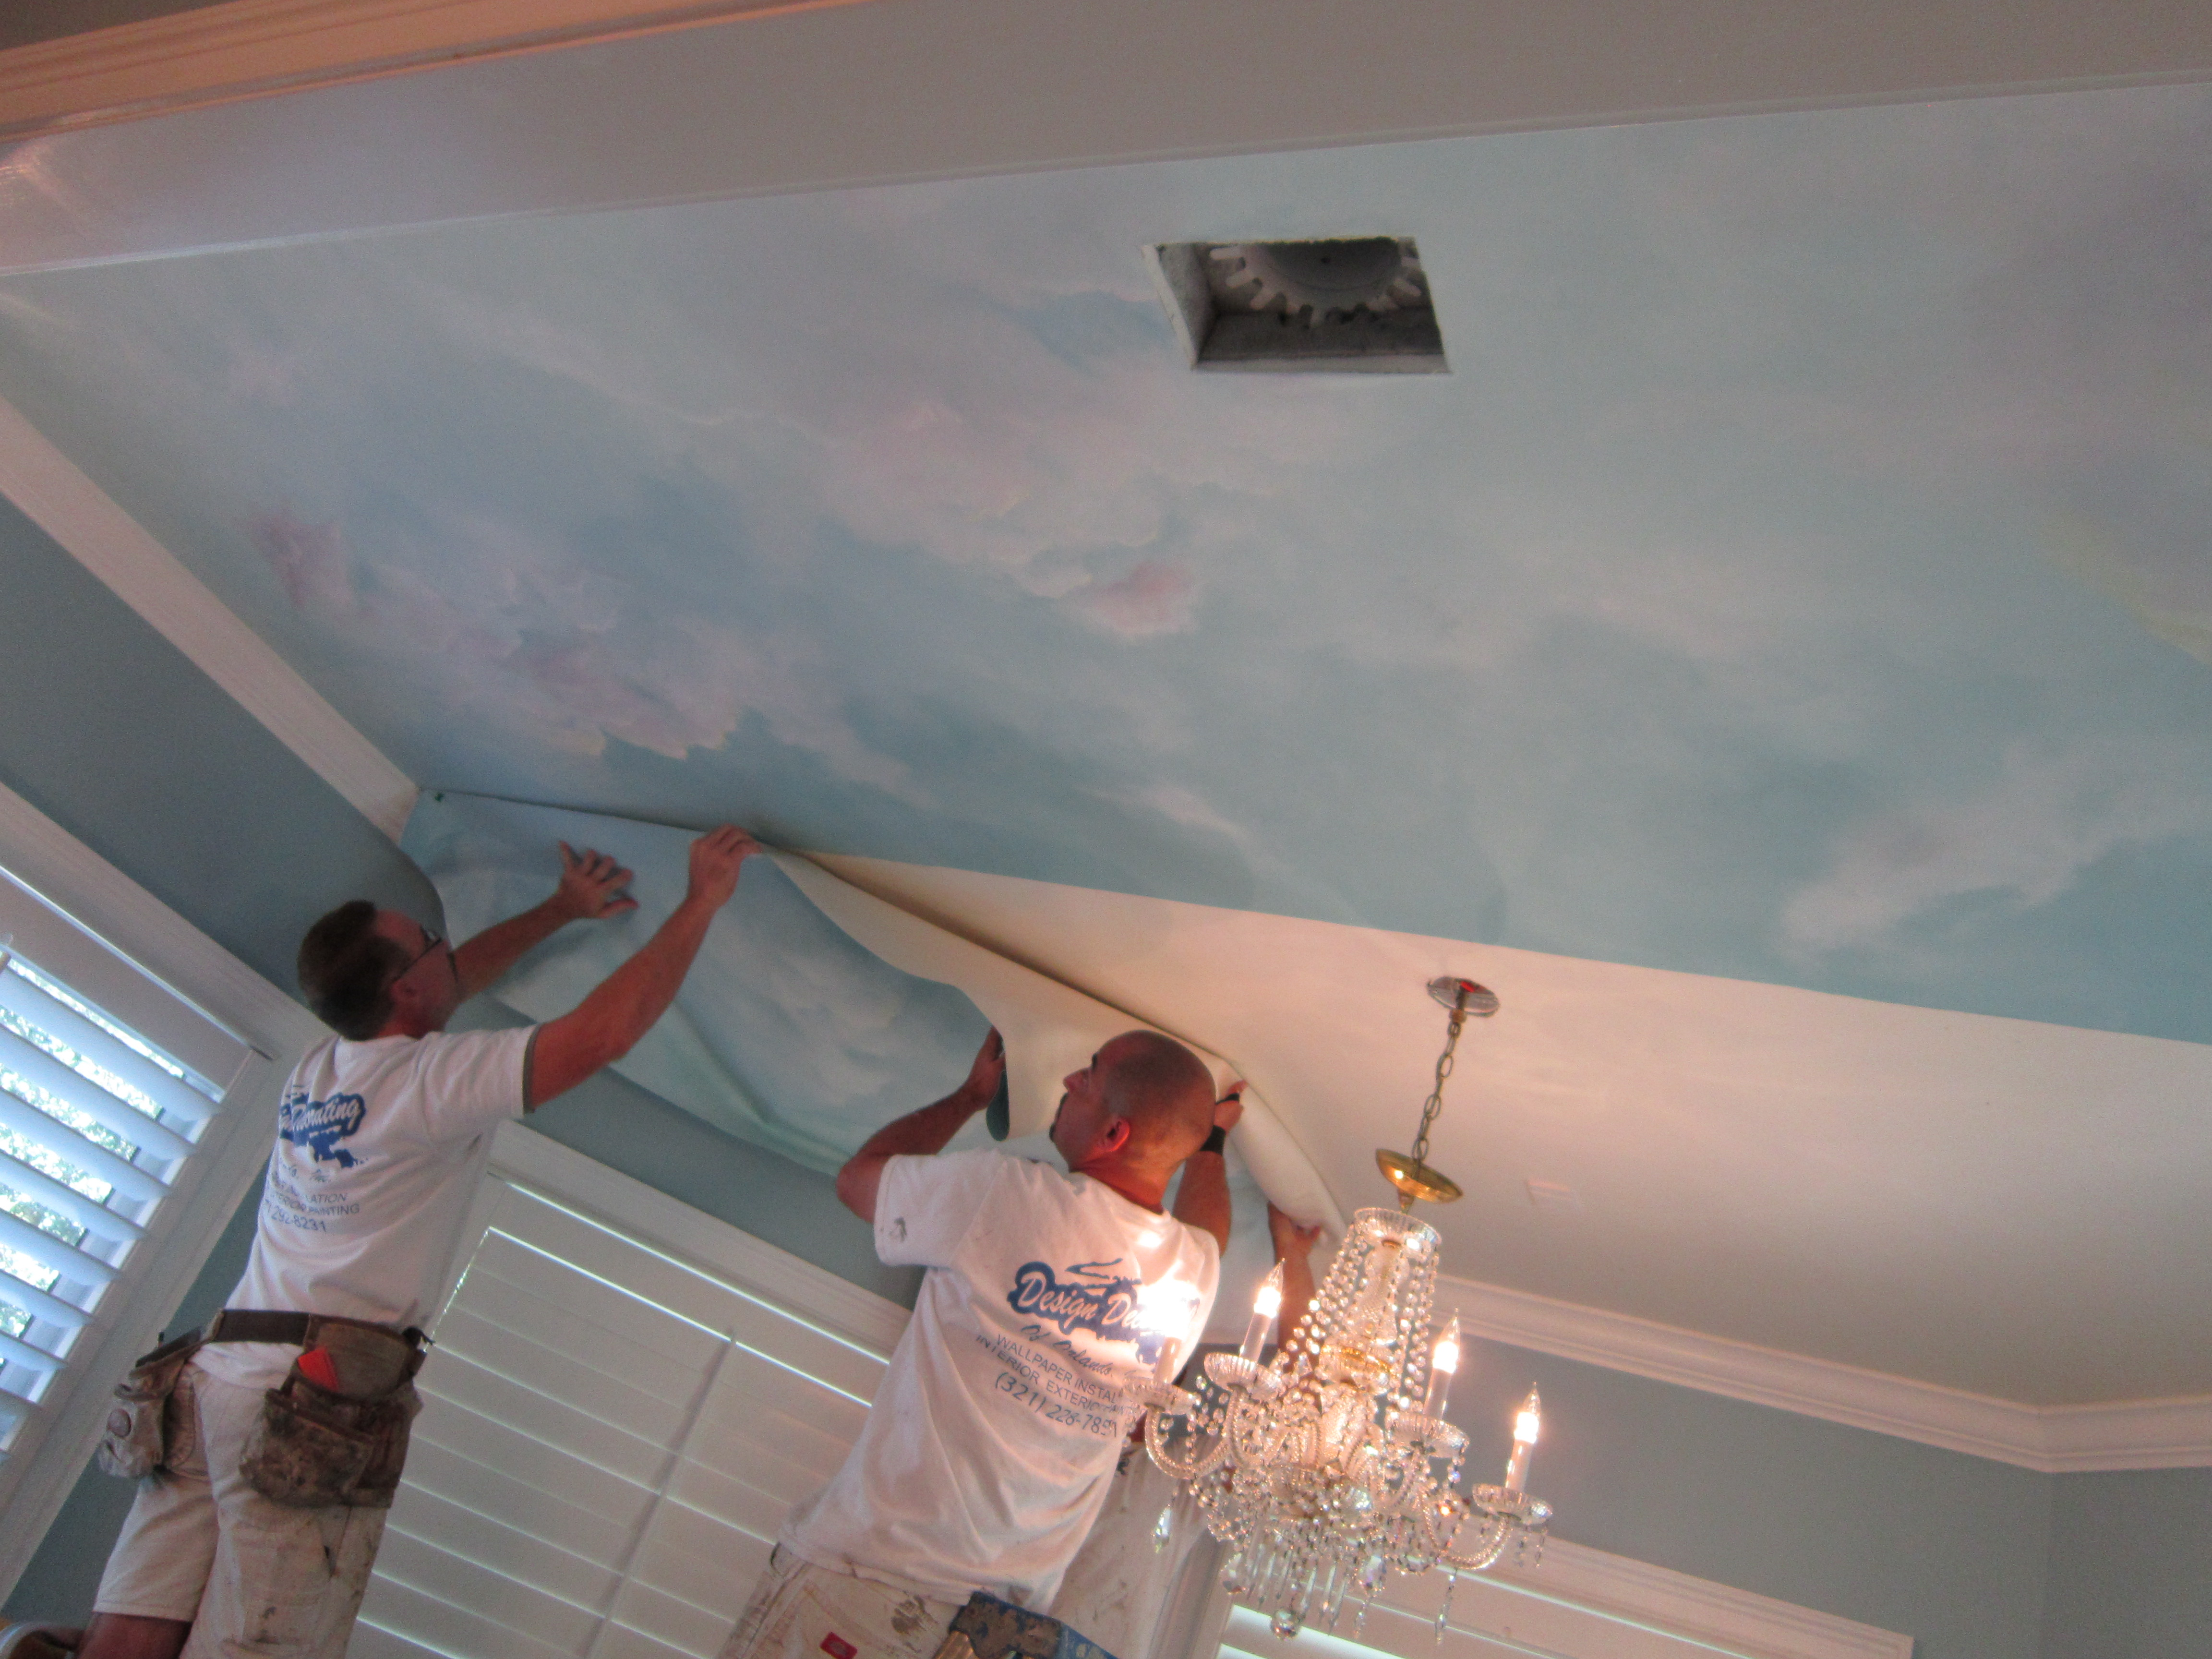 Wallpaper Falling Off Ceiling How To Paint A Ceiling Mural Without Breaking Your Neck